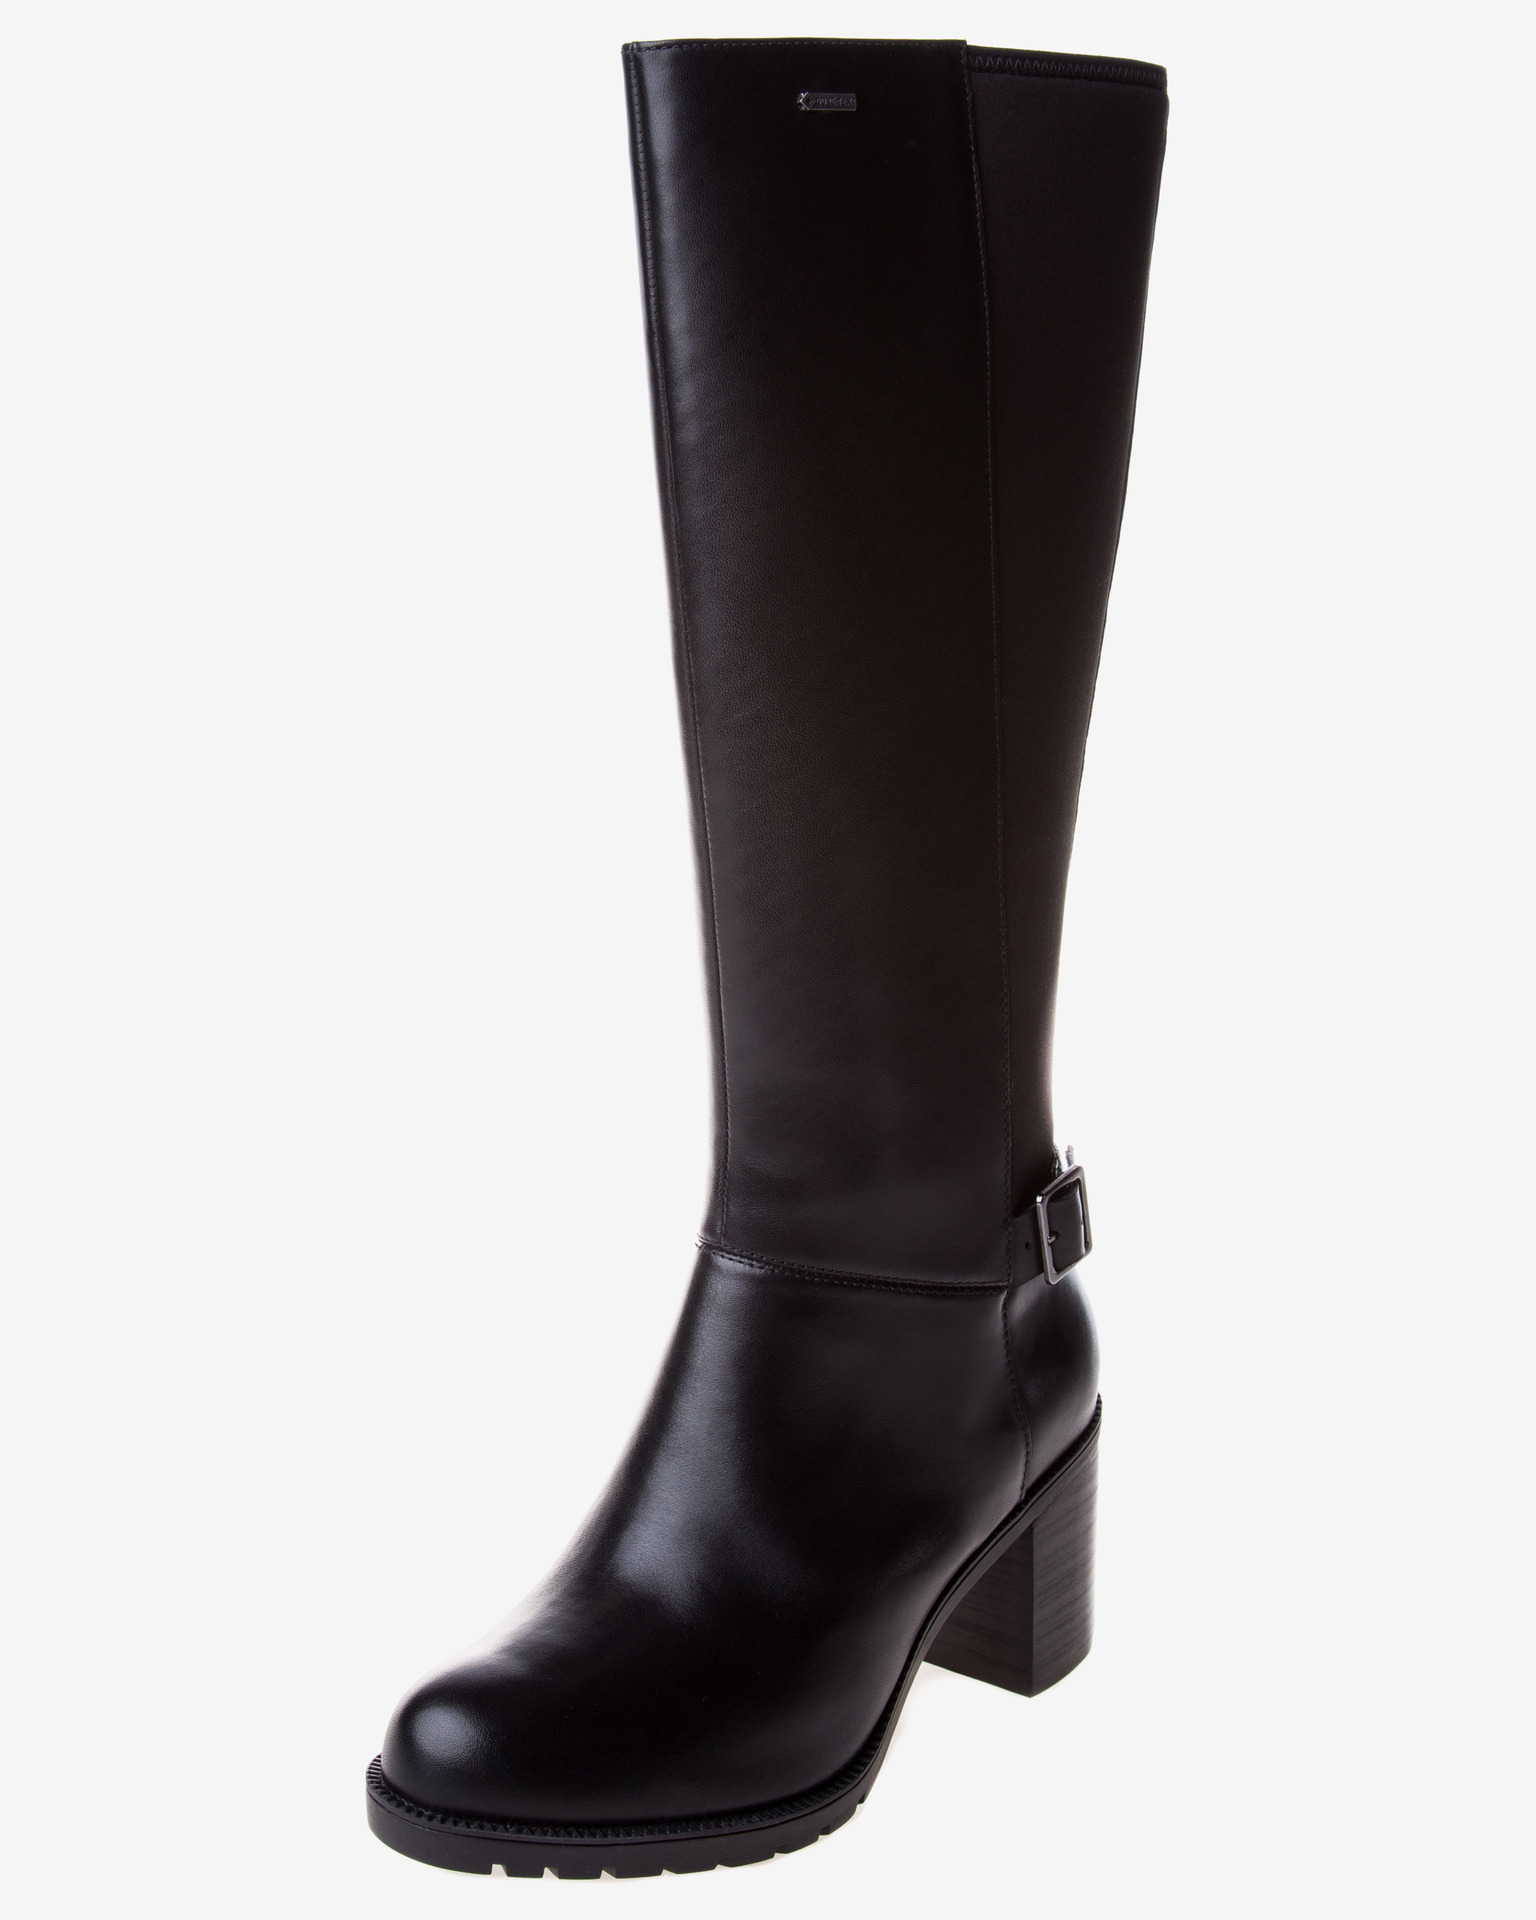 Knee high boots. Women's knee high boots are back this season as a statement piece to any outfit. Complete an evening look with black knee high boots and a dress or team them with your favourite skinny jeans for effortless on-trend style.